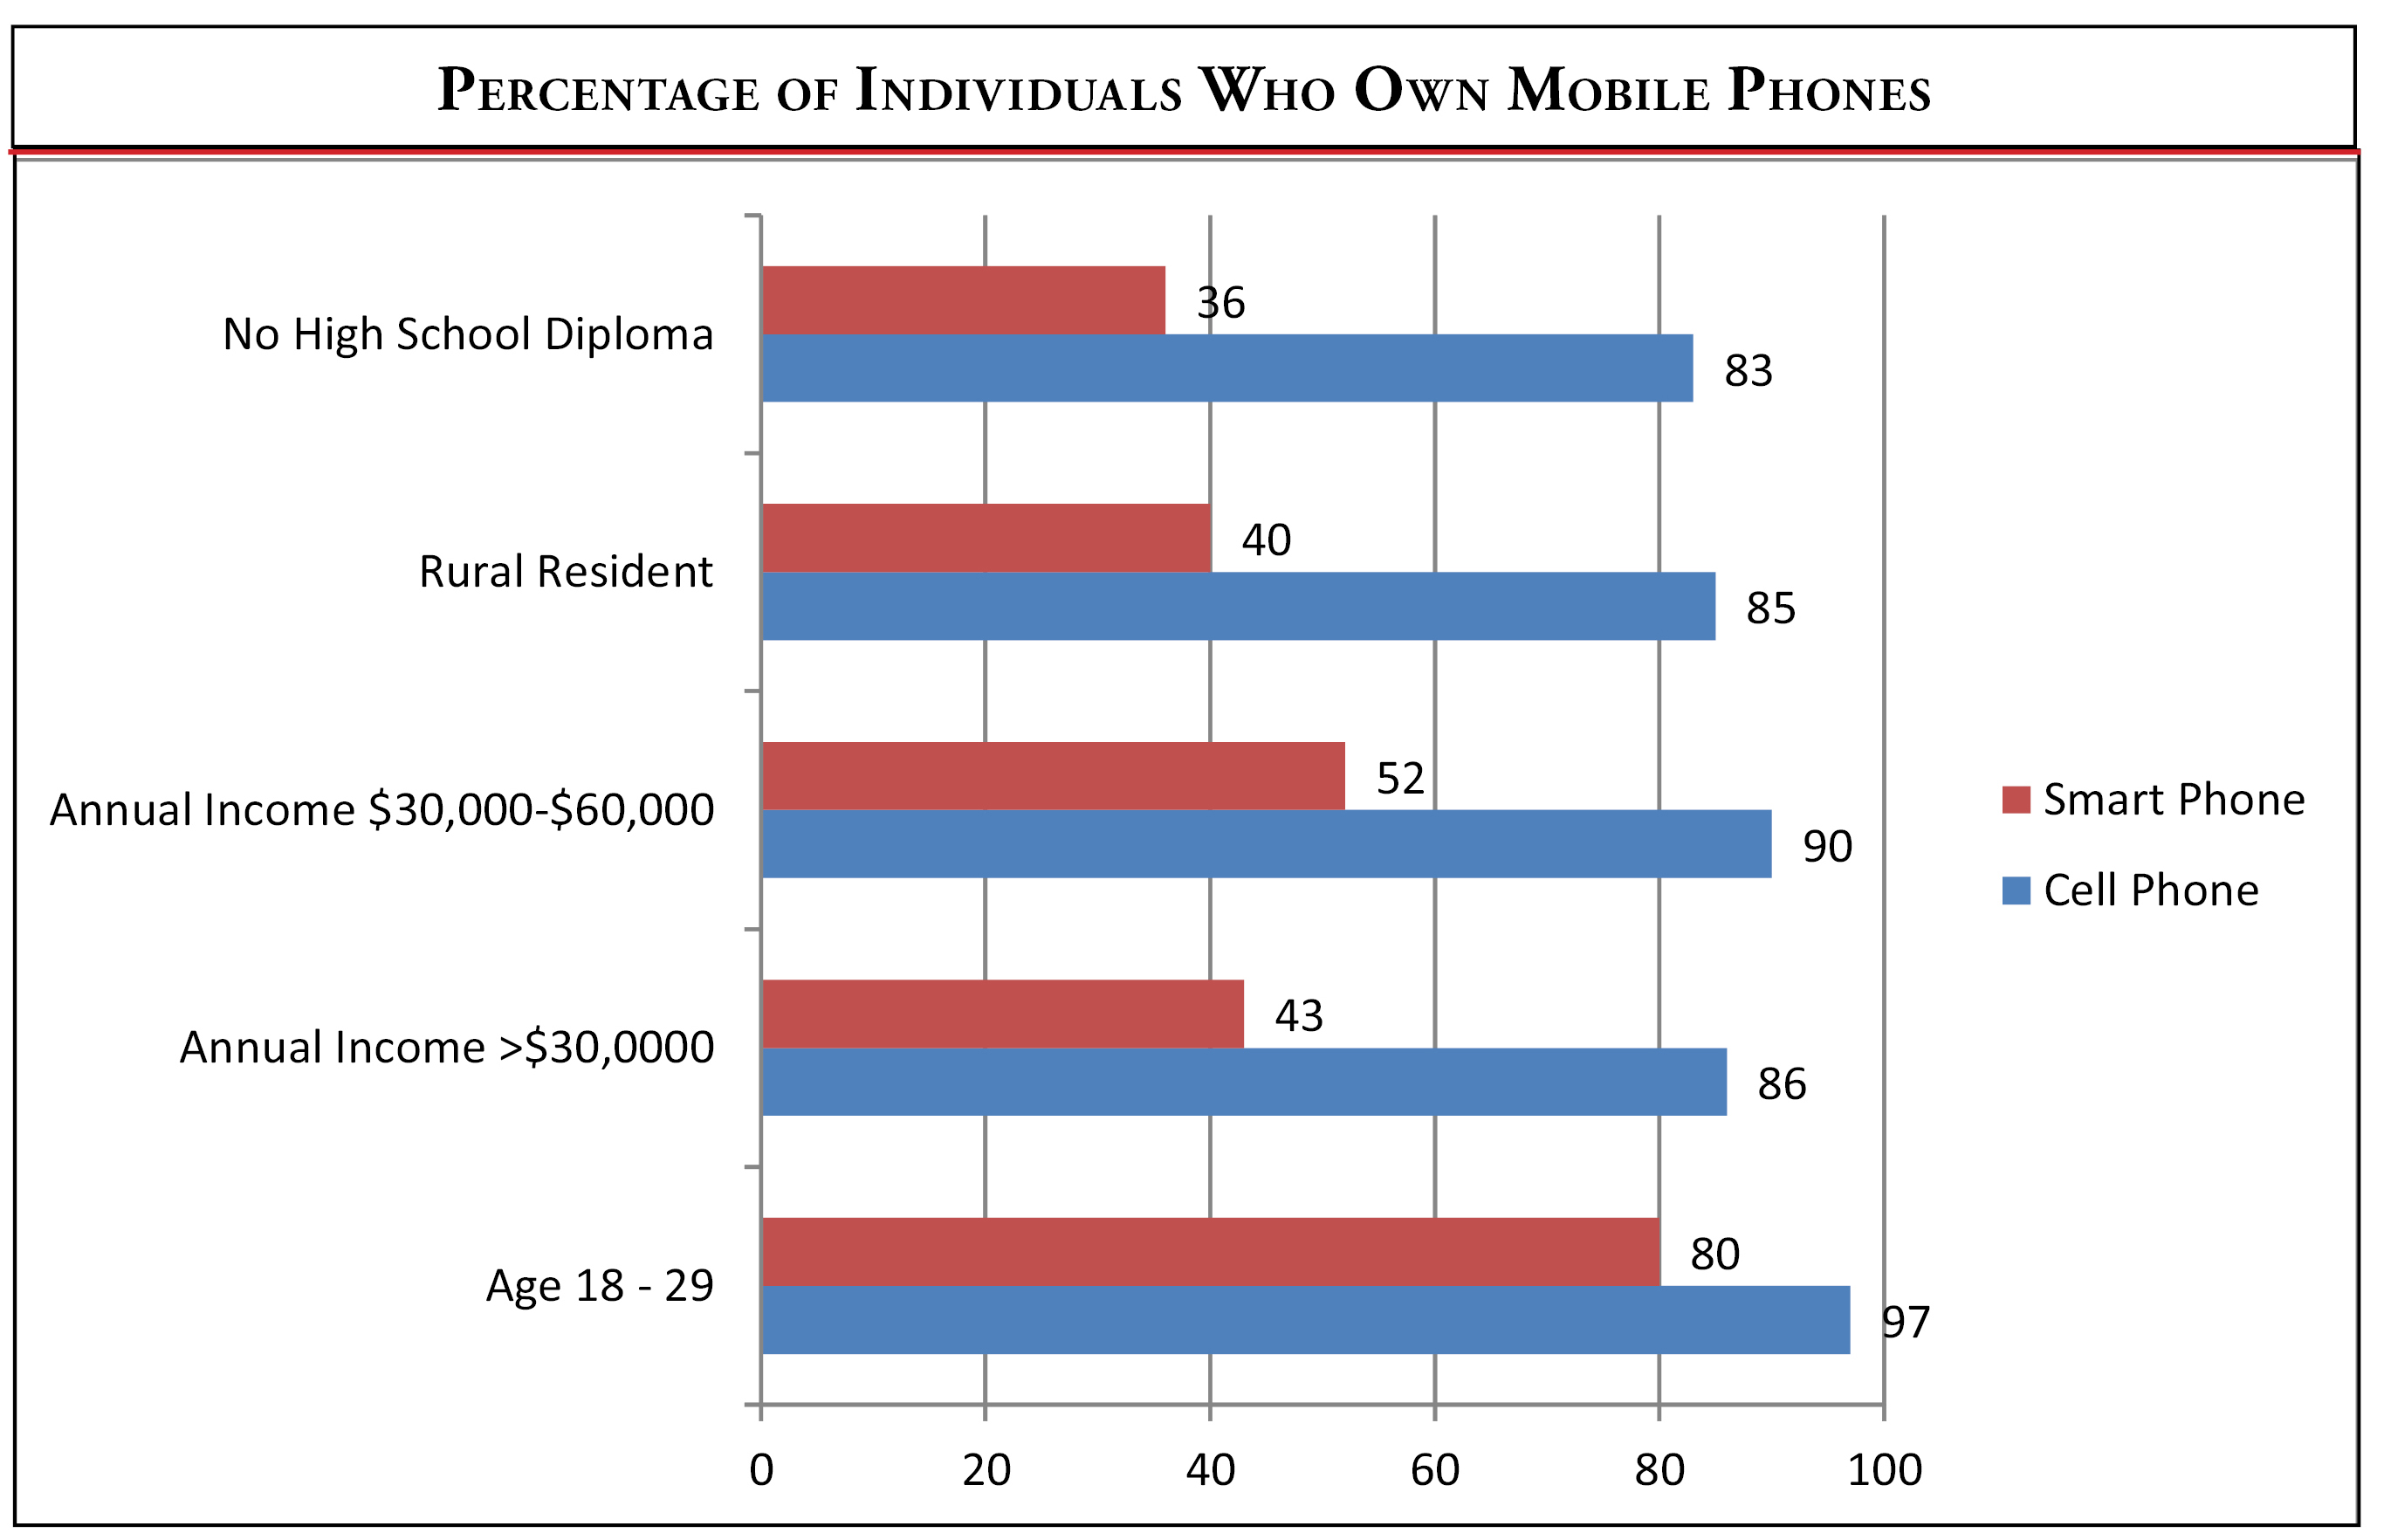 Percentage of adults who own mobile phones